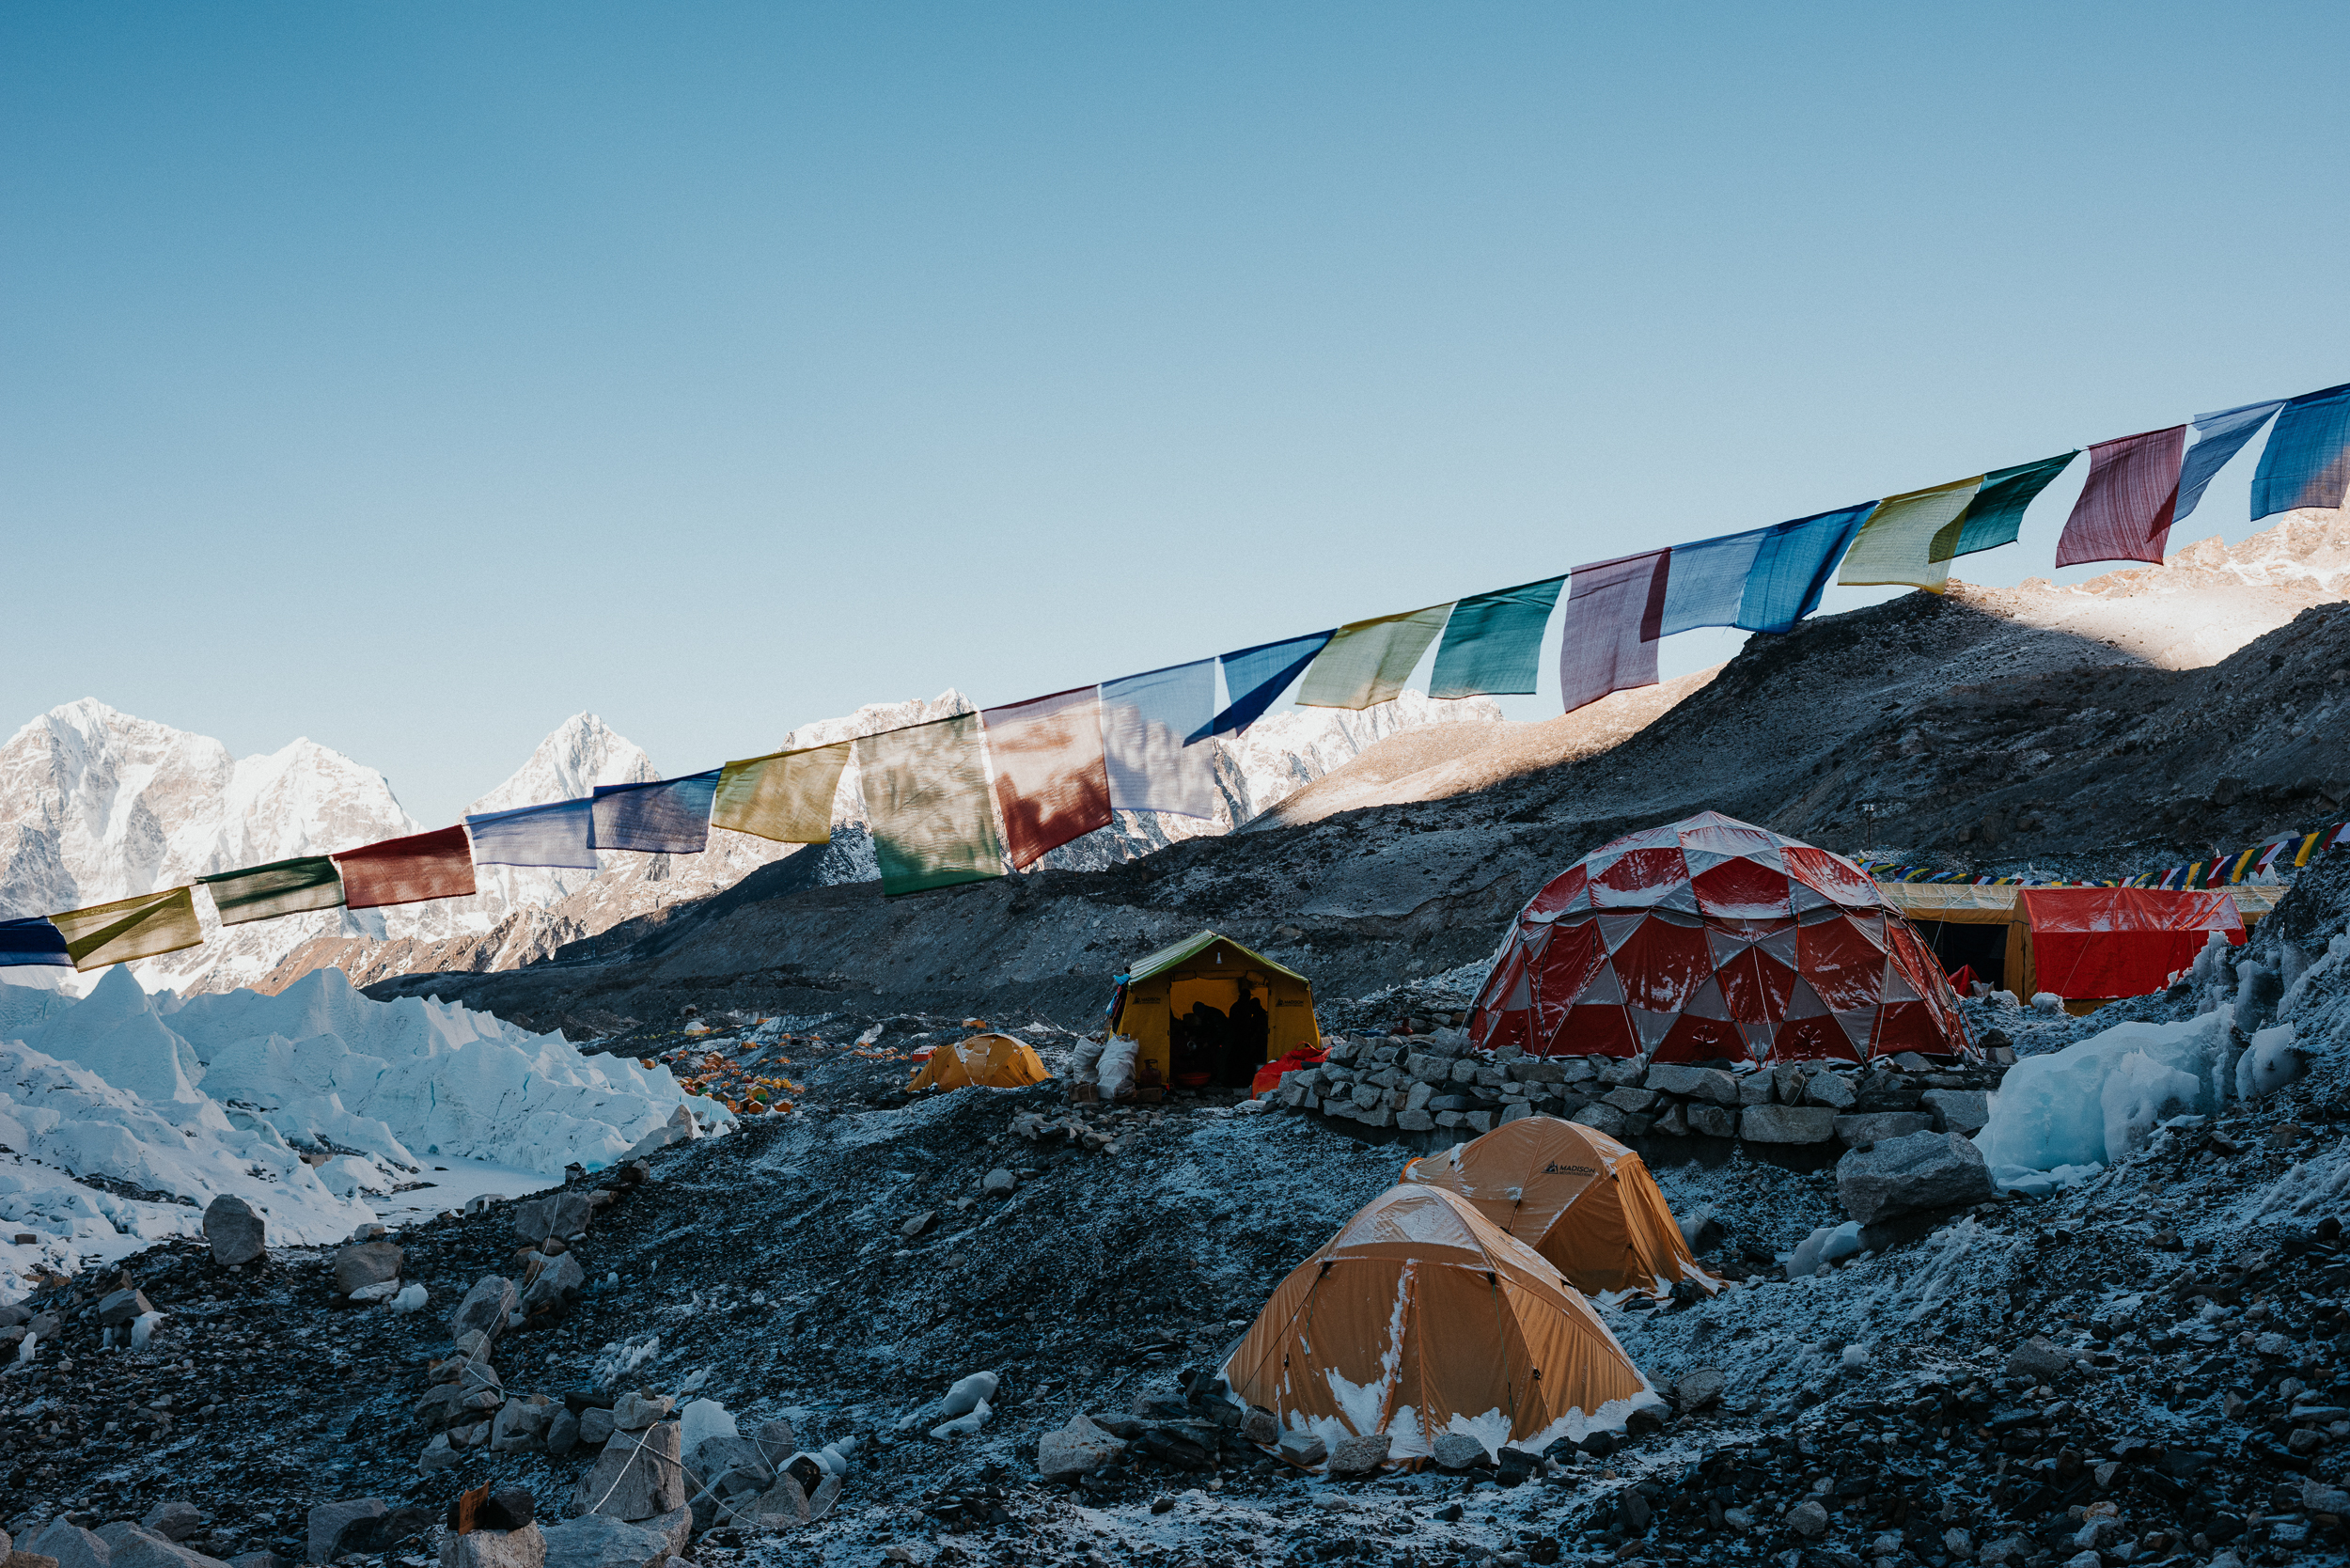 Nepal_EverestBaseCamp_2019_TaraShupe_Photography_DSC_4358.jpg